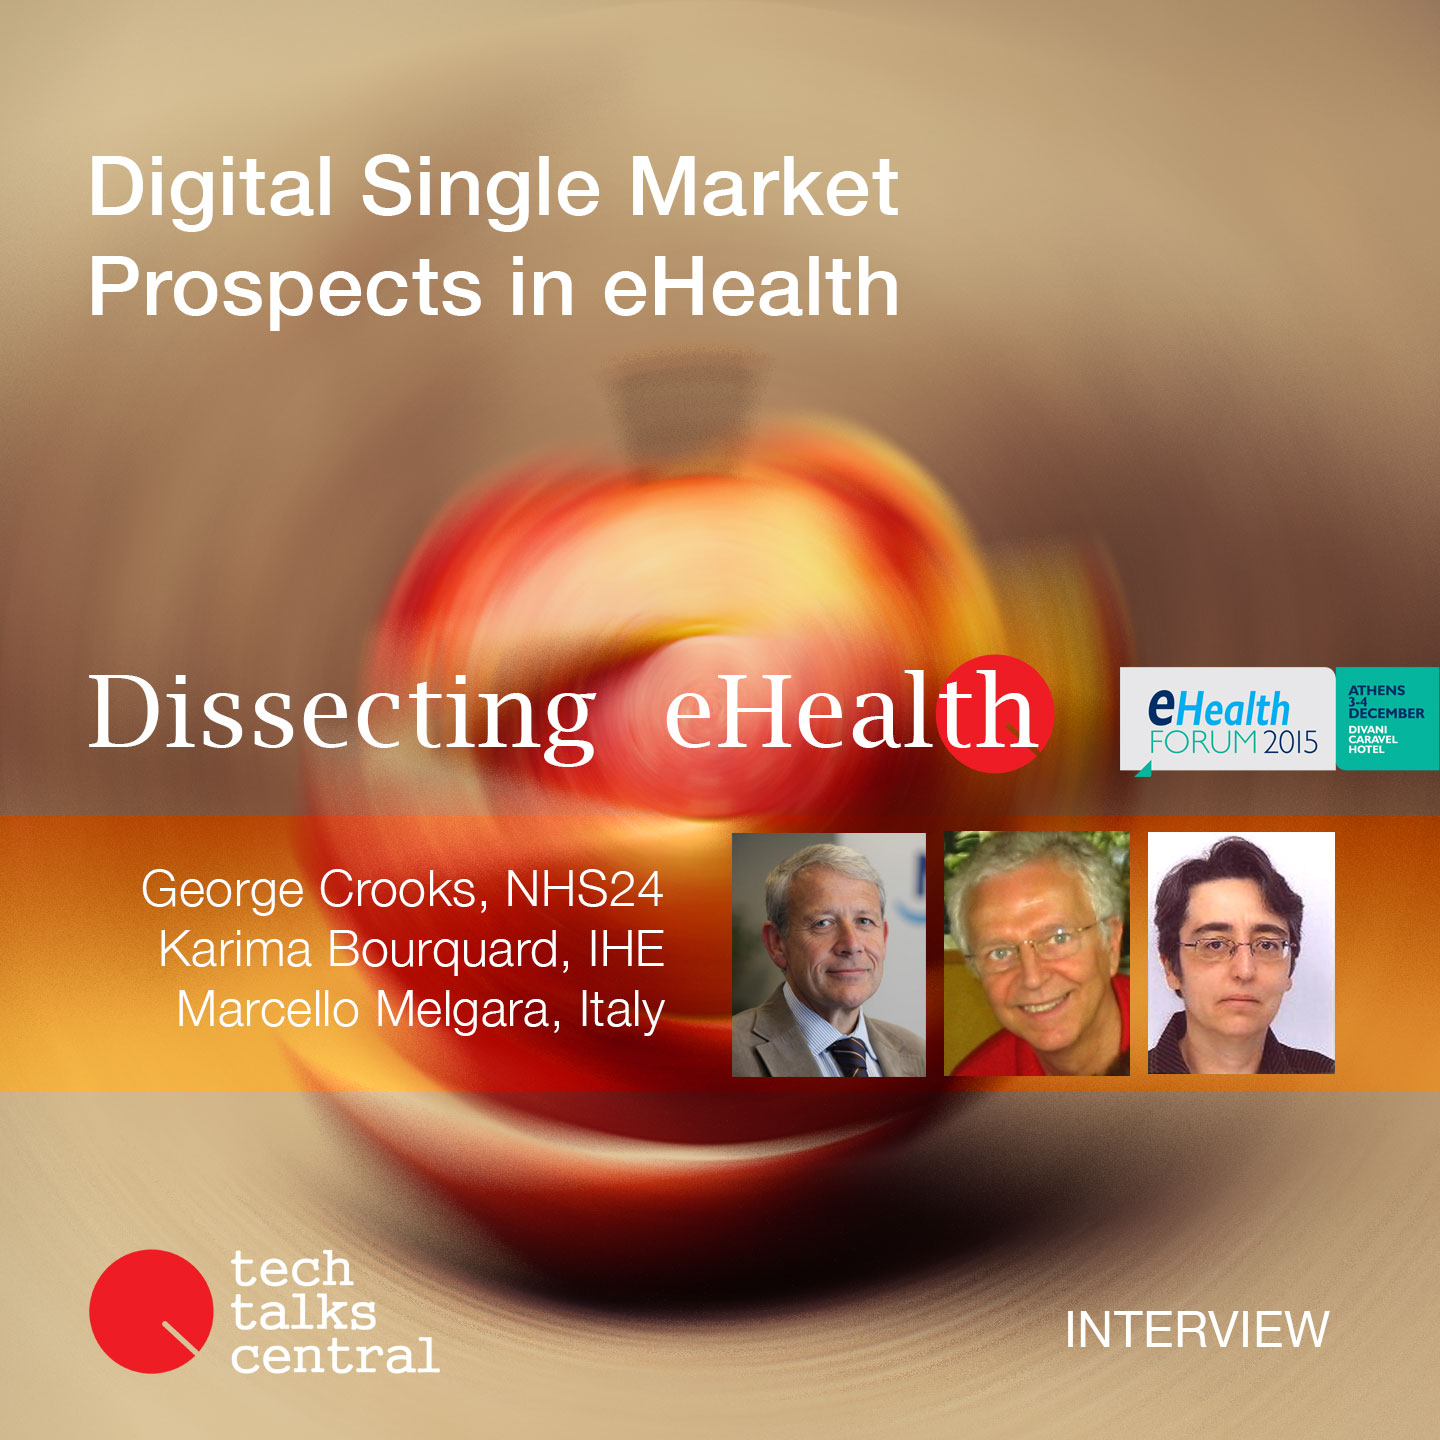 Digital Single Market Prospects in eHealth